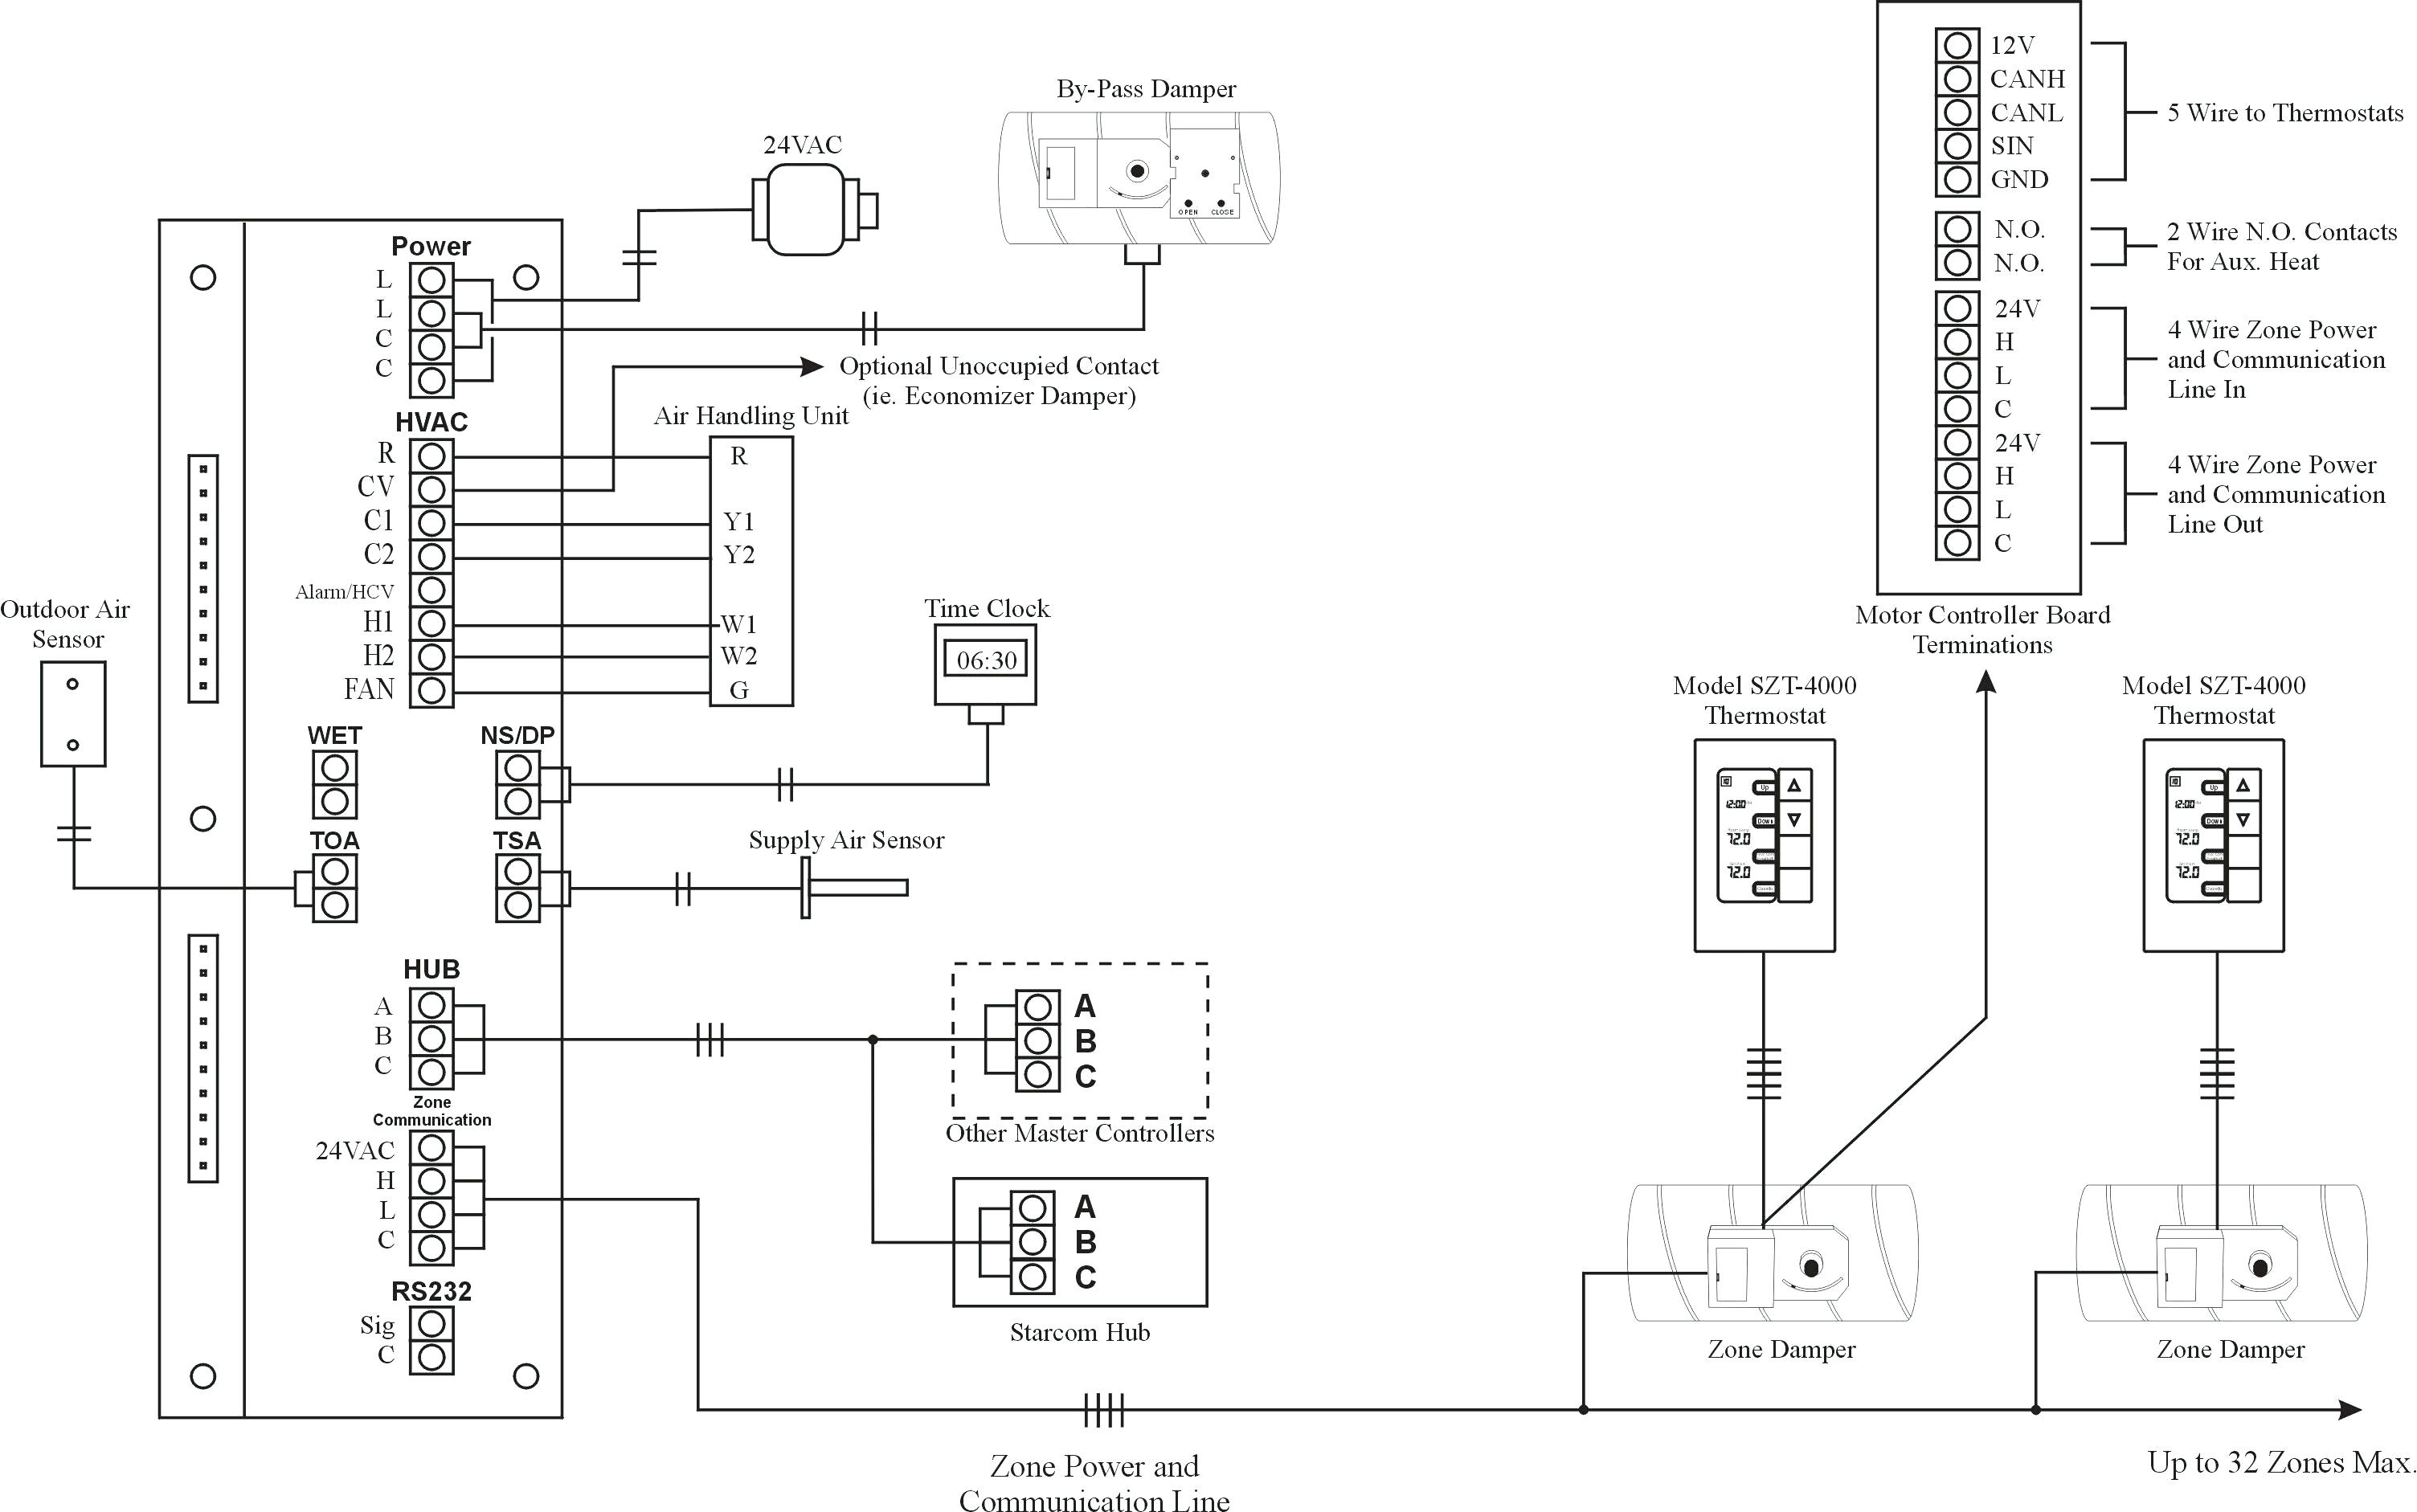 Fire Alarm Wiring Diagram For Piv Auto Electrical Kitchen Unit Lights Related With